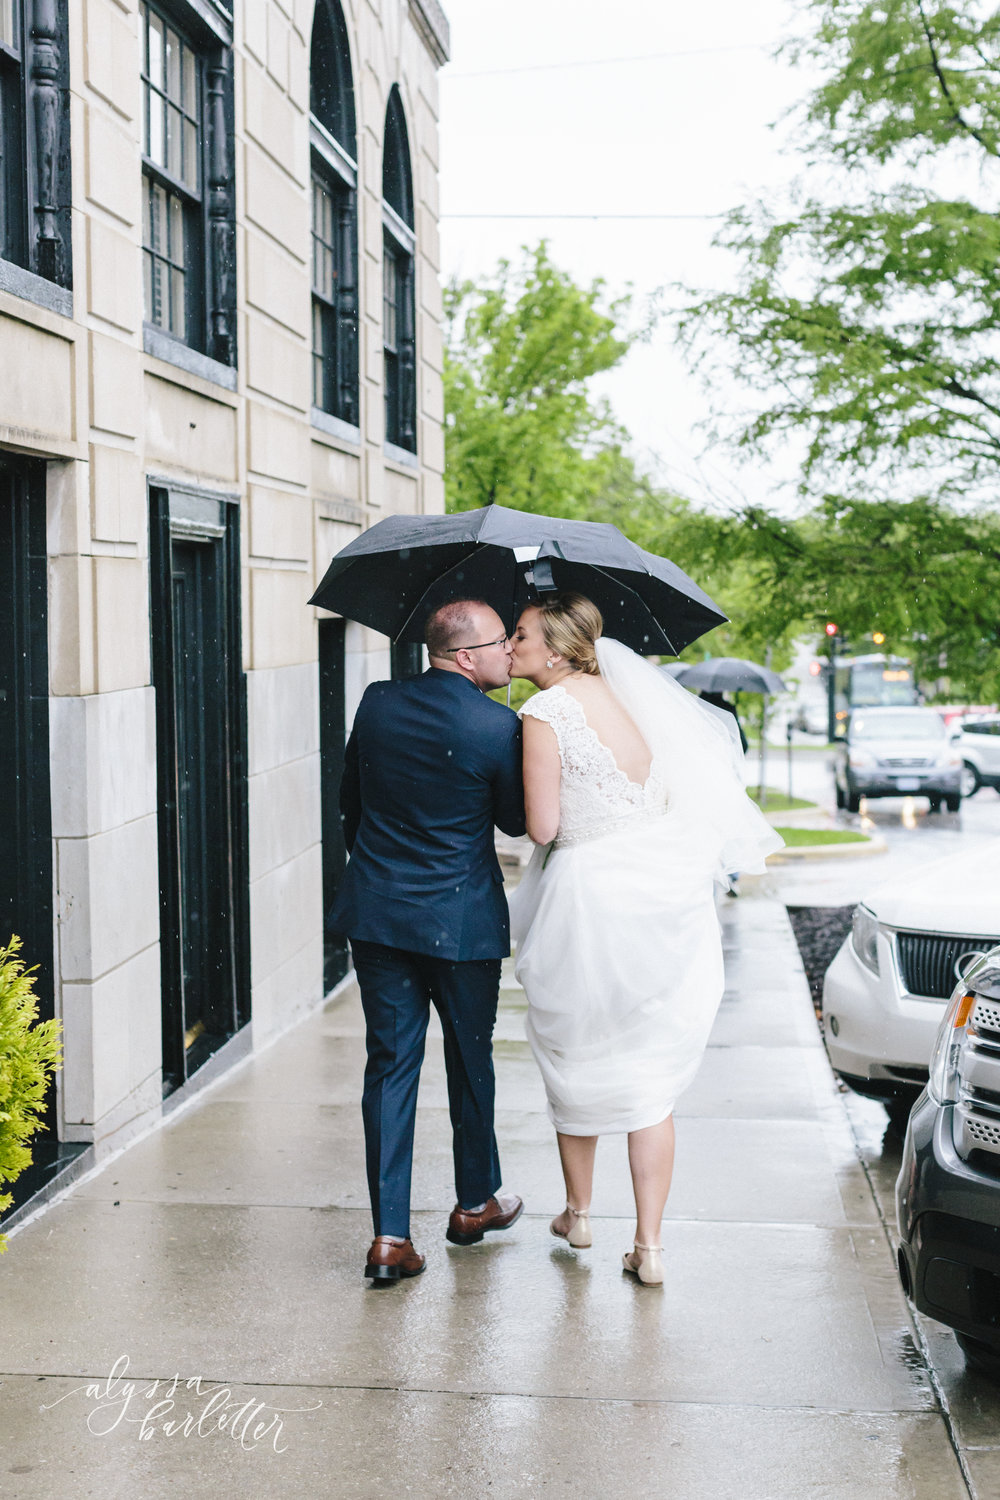 alyssa barletter photography cider gallery lawrence kansas rainy day wedding megan and brett-1-16.jpg